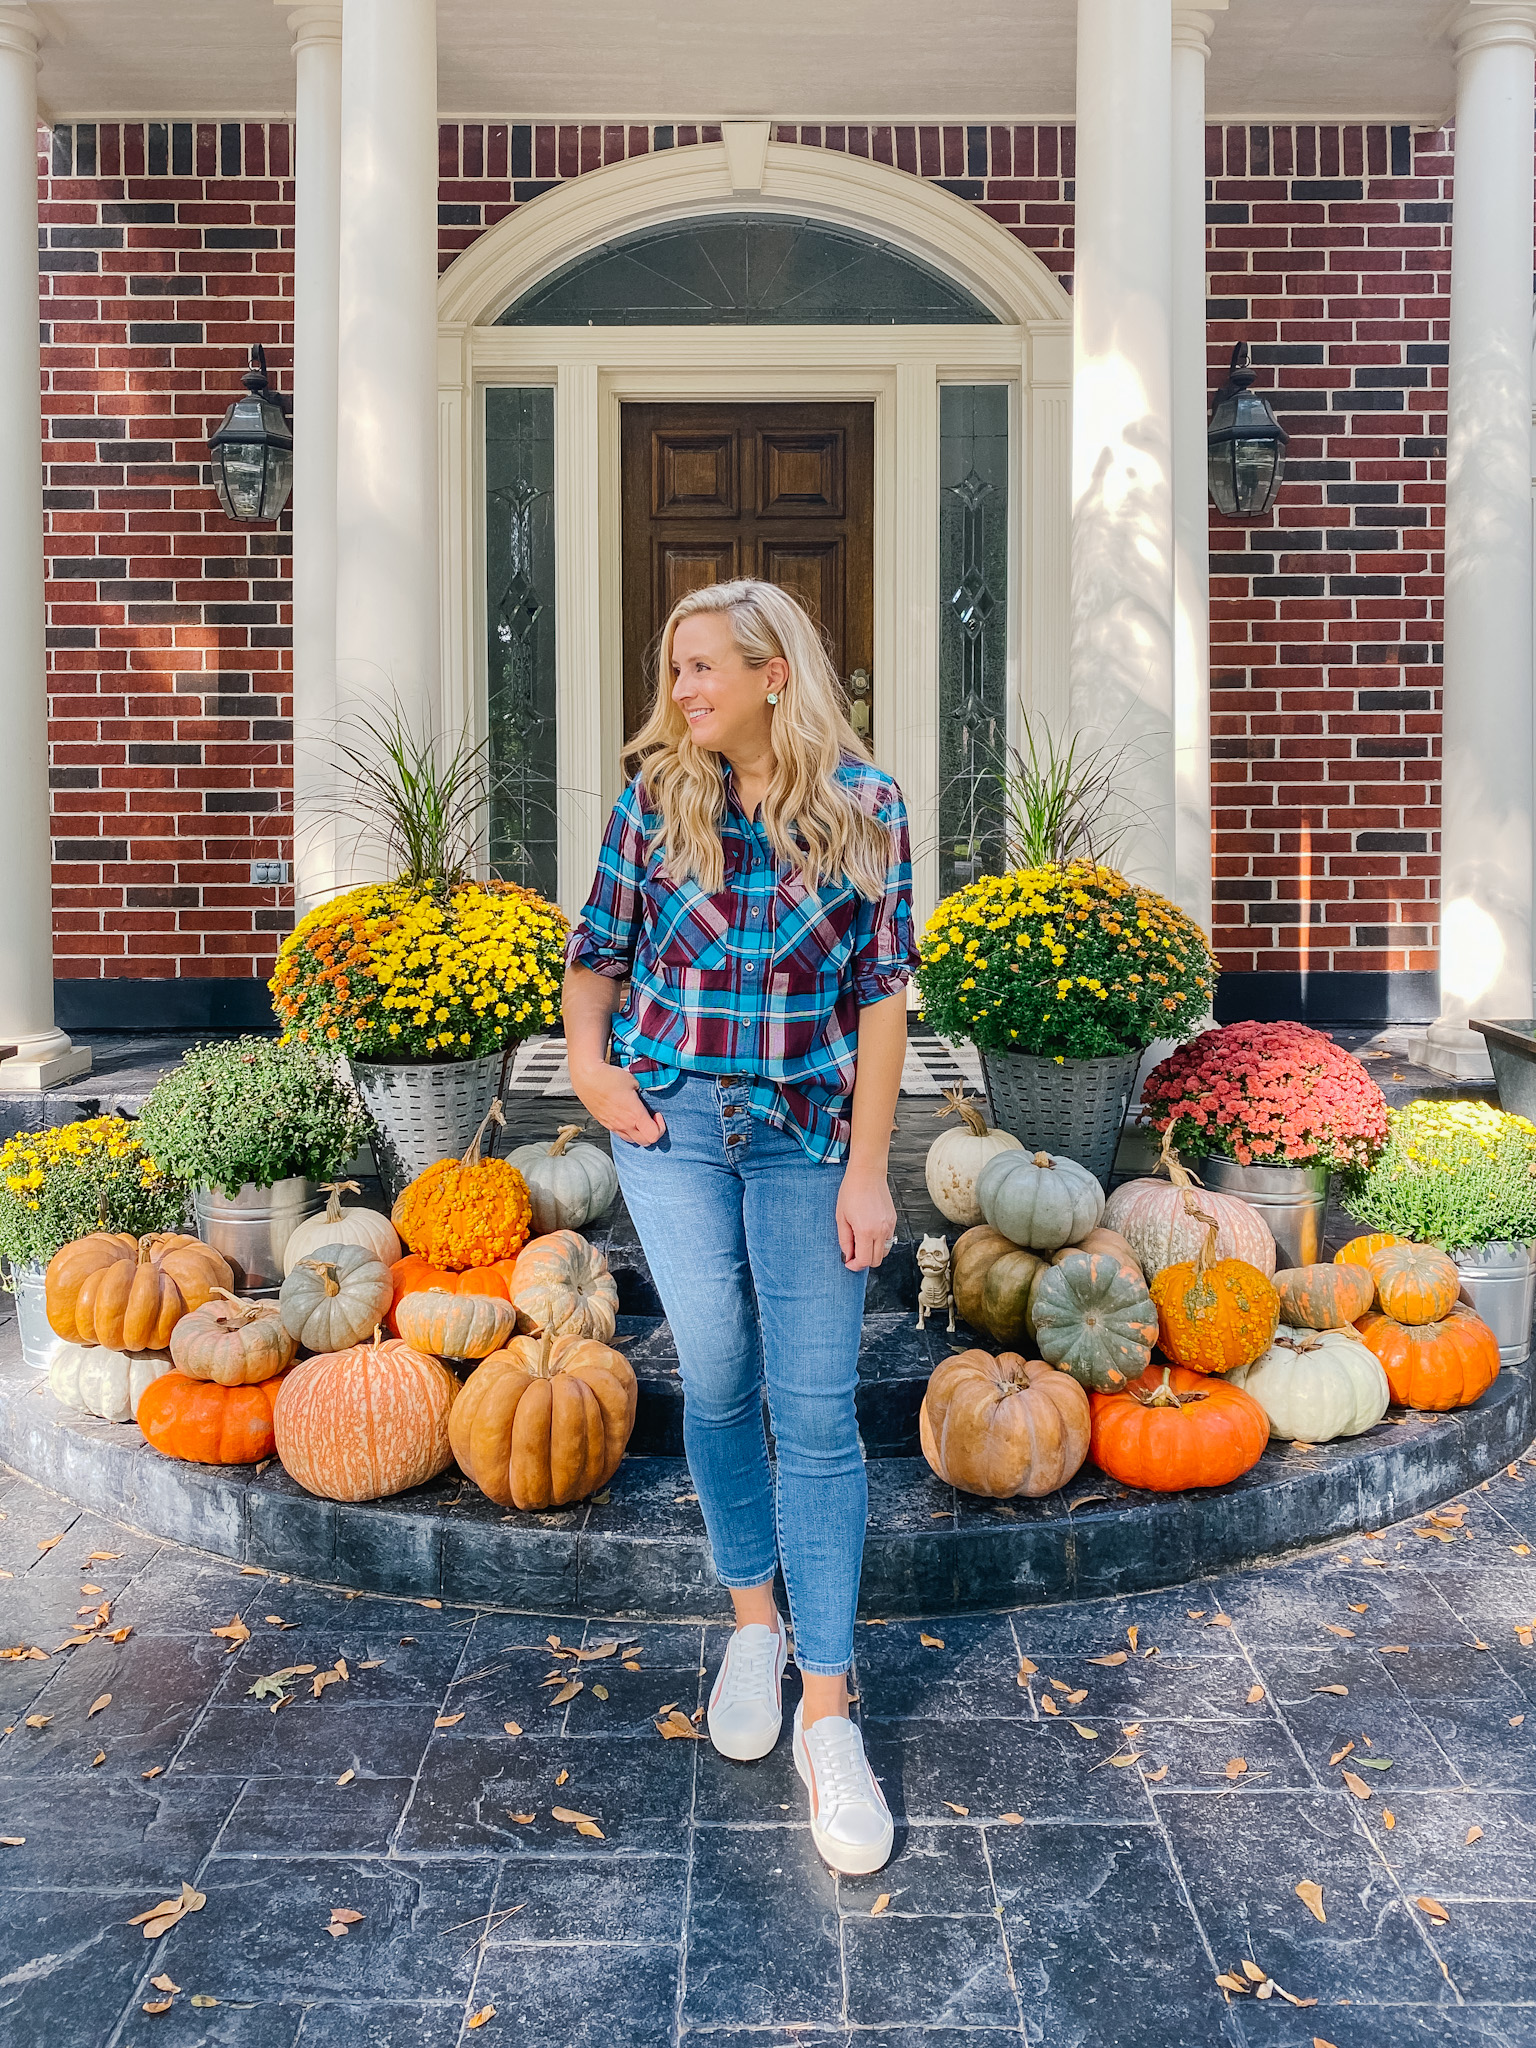 Fall Plaid by popular Houston fashion blog, Fancy Ashley: image of a woman standing in front of a front porch decorated with pumpkins and potted mums and wearing a plaid top, jeans, and white sneakers.